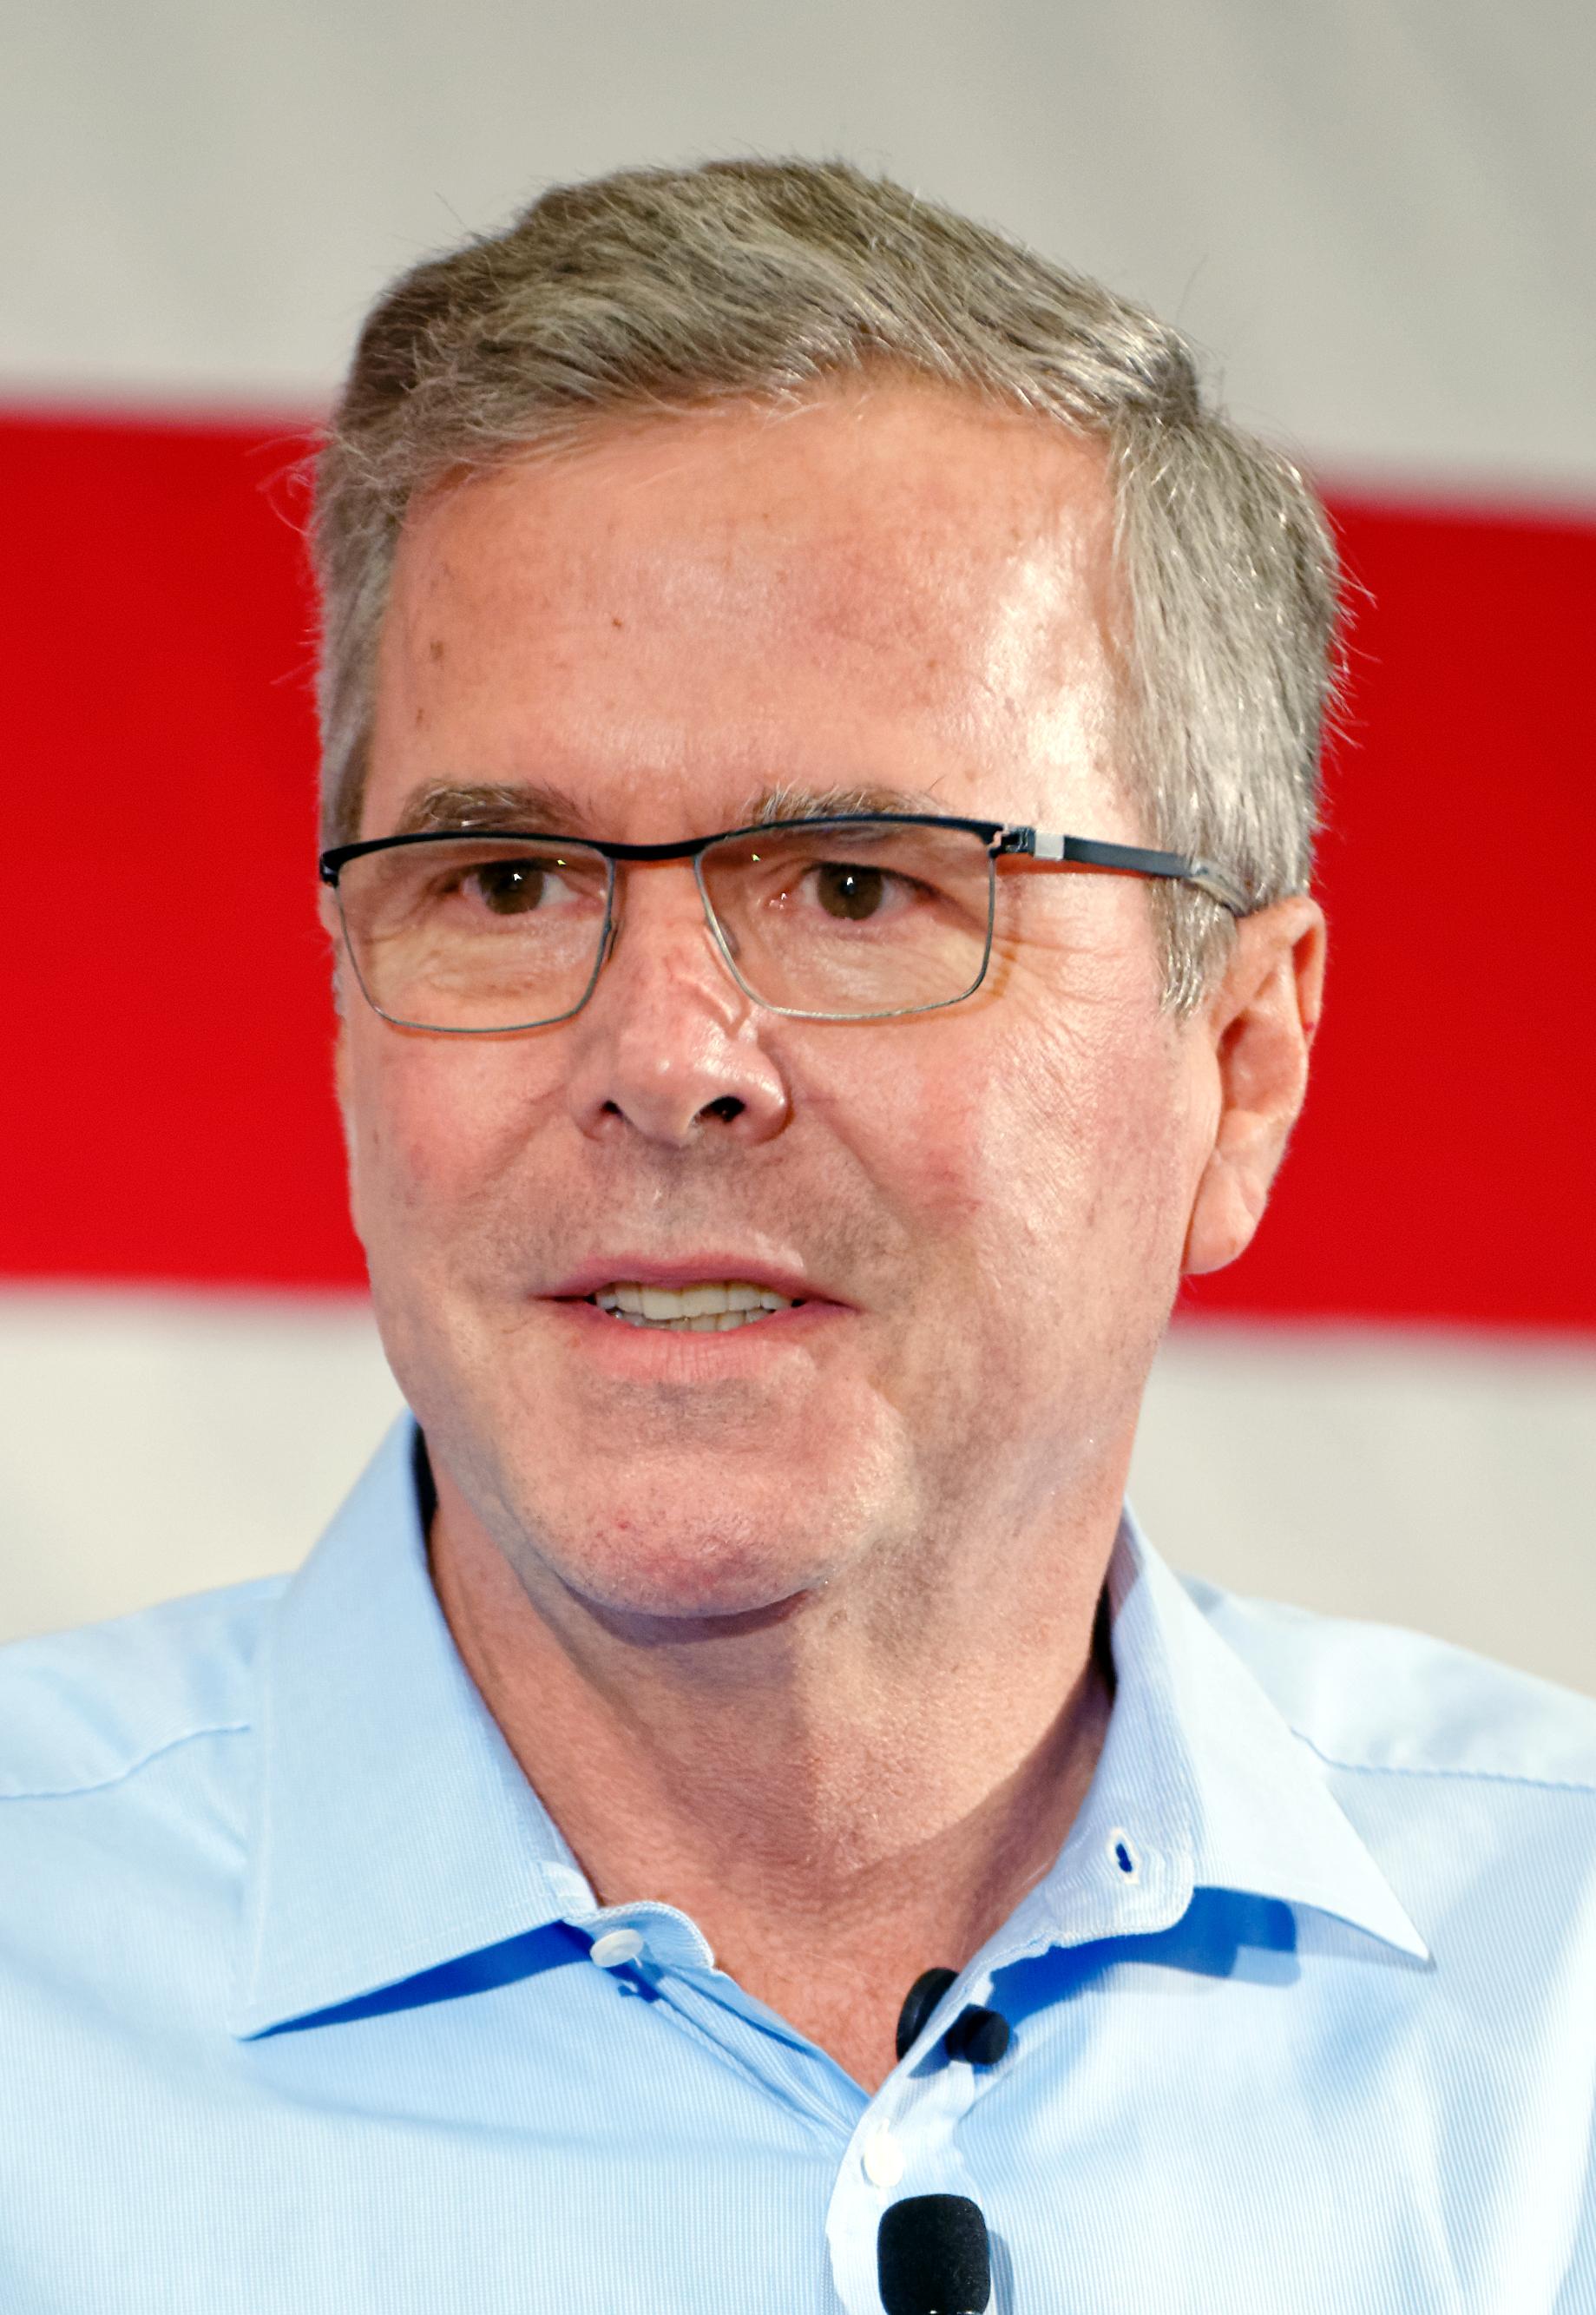 The 67-year old son of father George H. W. Bush and mother Barbara Bush Jeb Bush in 2020 photo. Jeb Bush earned a  million dollar salary - leaving the net worth at 10 million in 2020